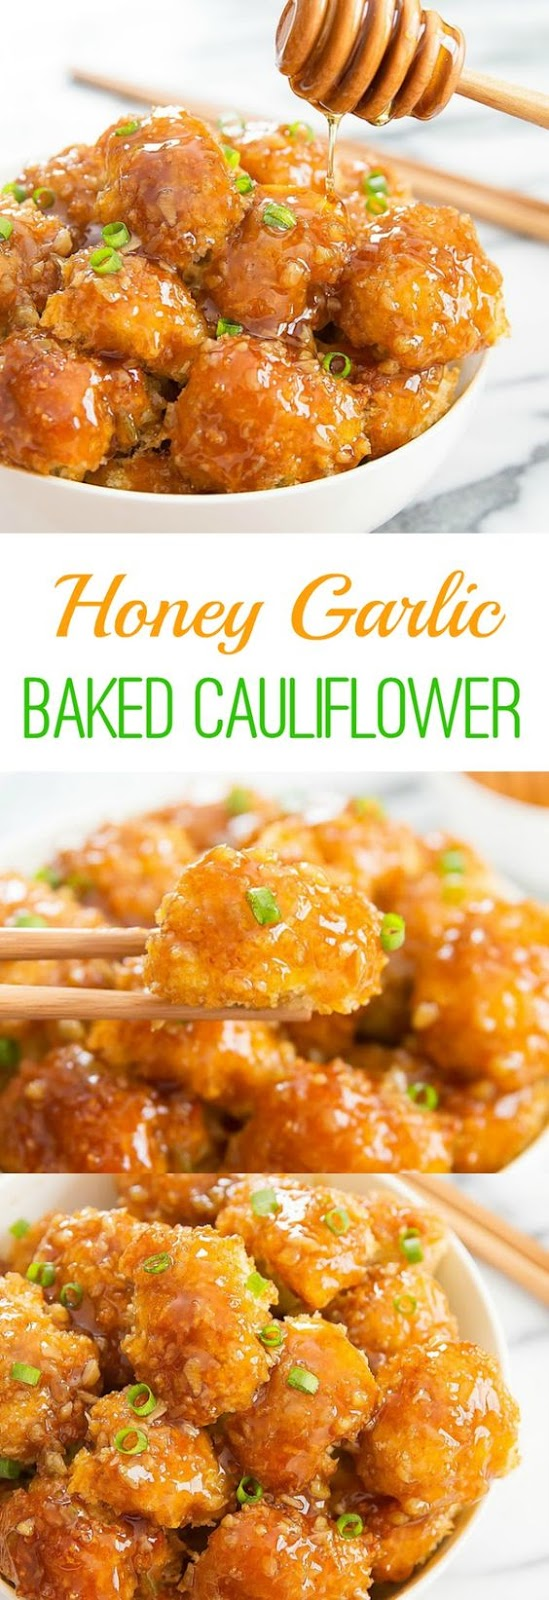 Crunchy baked breaded cauliflower pieces are coated with honey garlic sauce. It's an easy and delicious weeknight mea